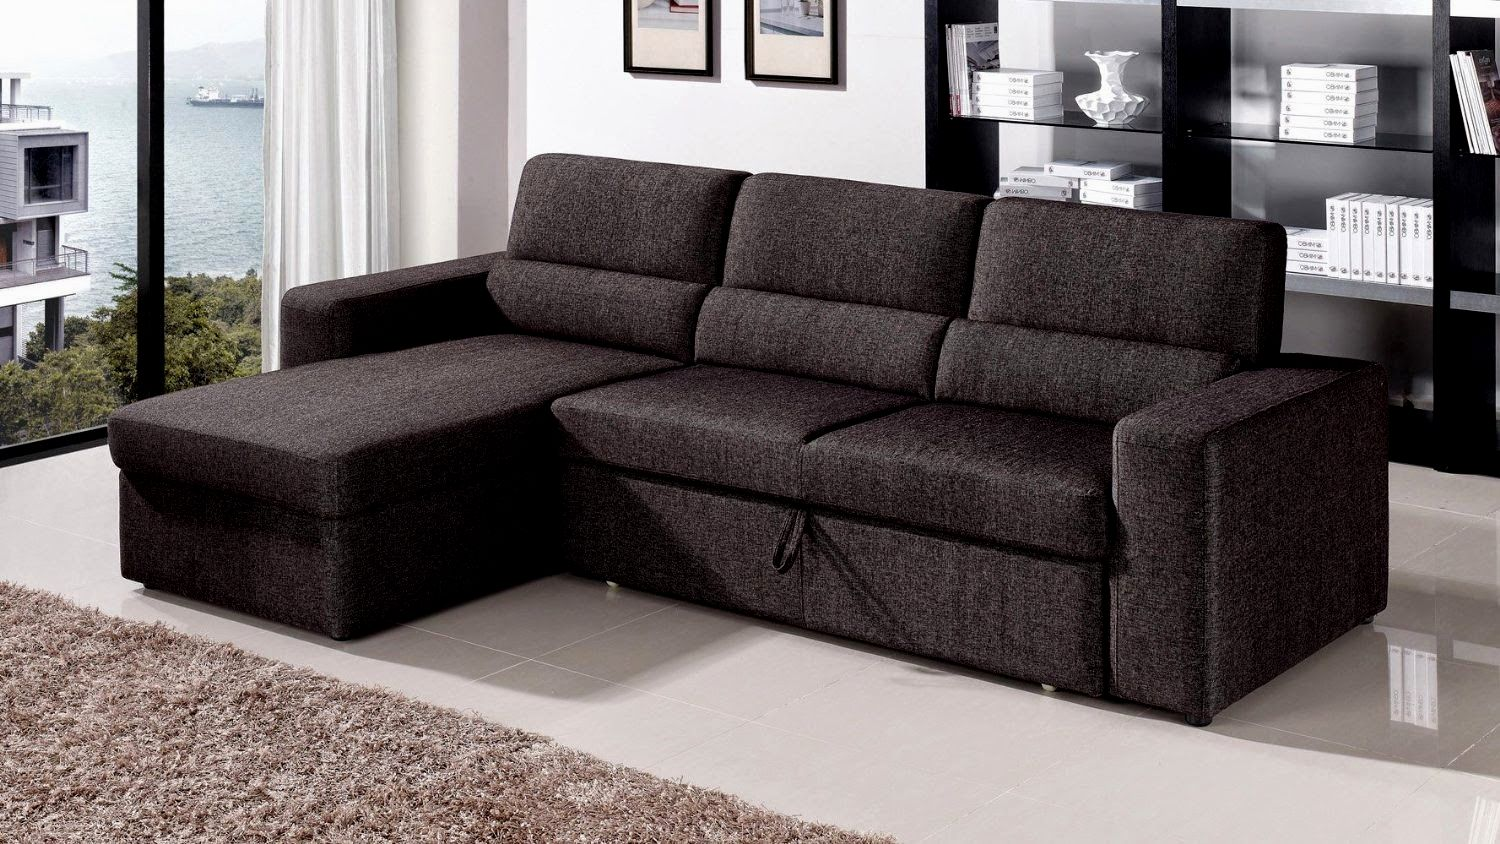 inspirational sofa sleeper sectional picture-Superb sofa Sleeper Sectional Portrait